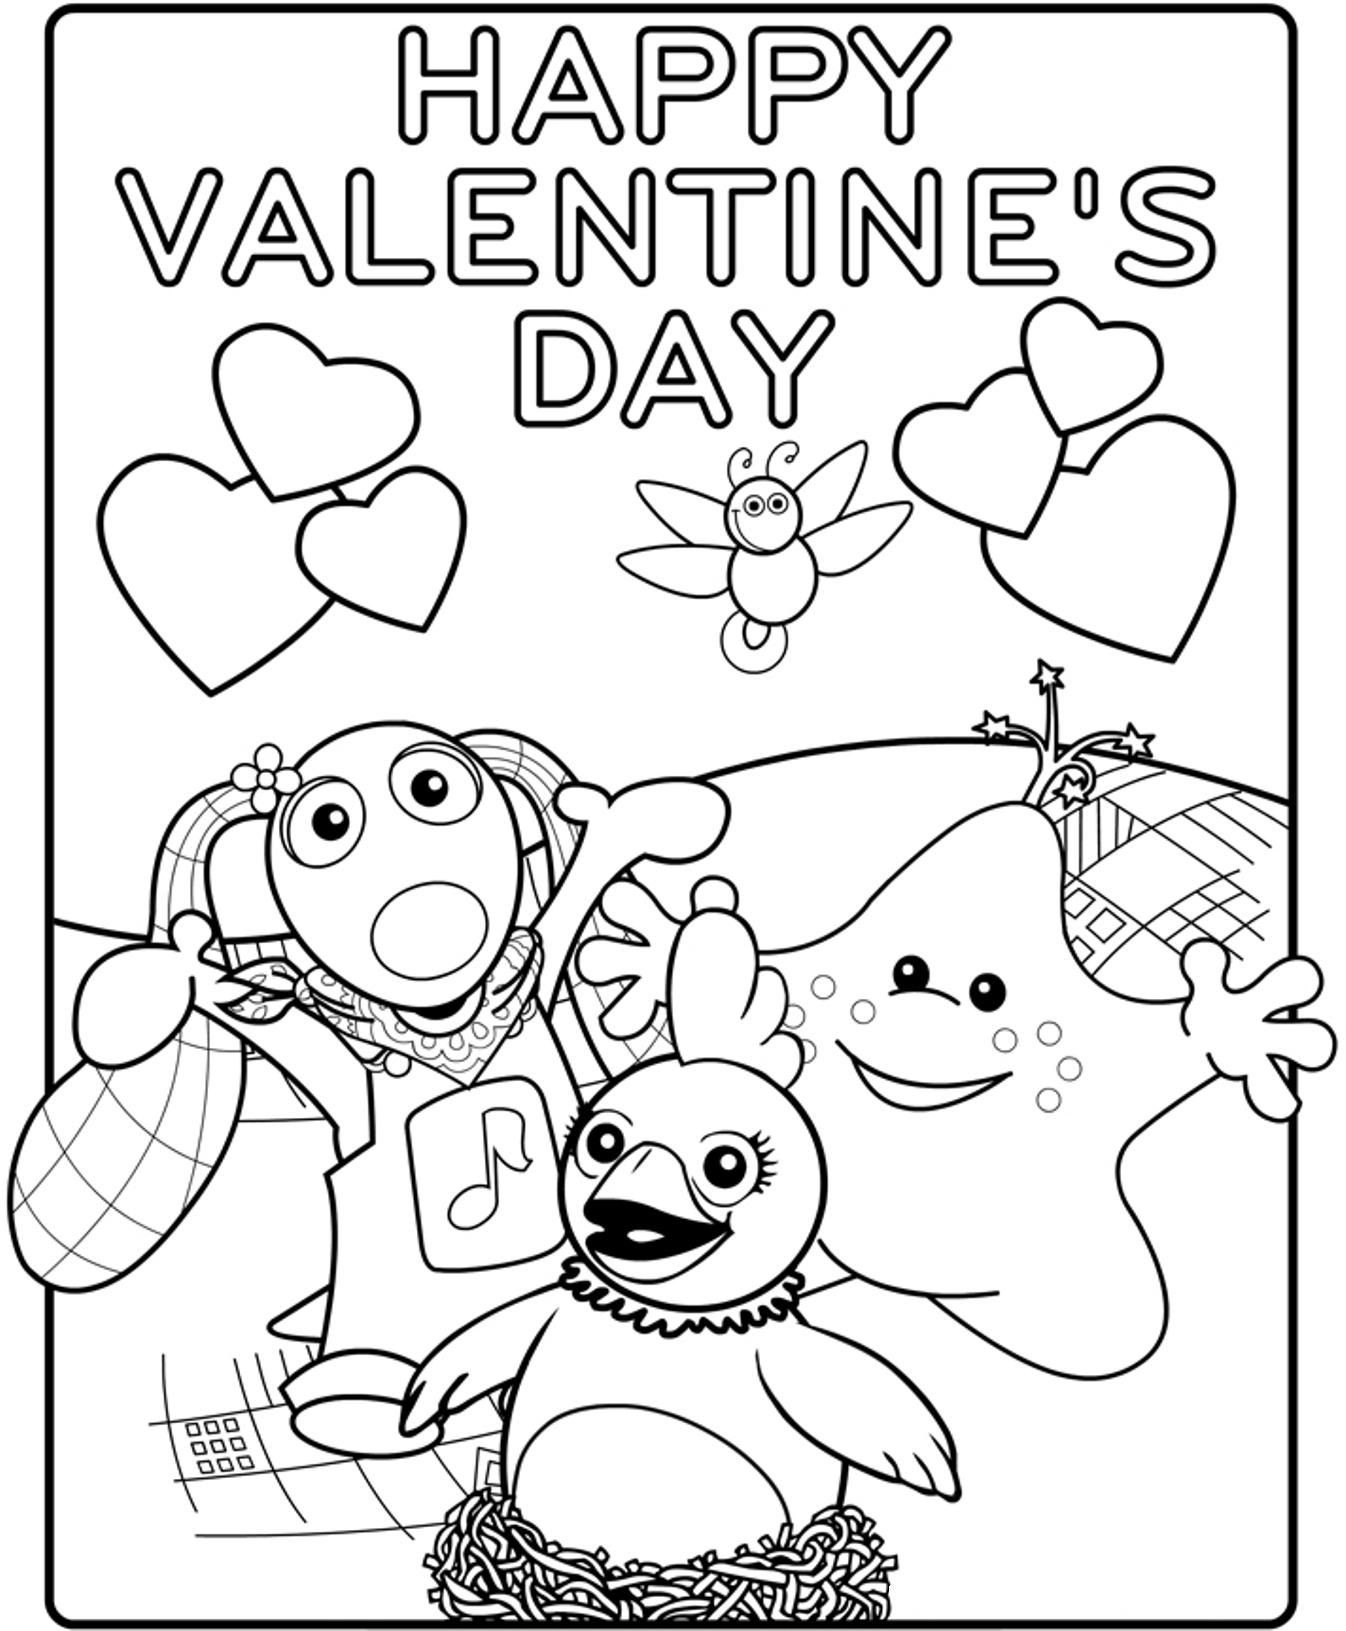 Happy Valentines Day Coloring Pages  Printable Happy Valentines Coloring Pages Coloring Home